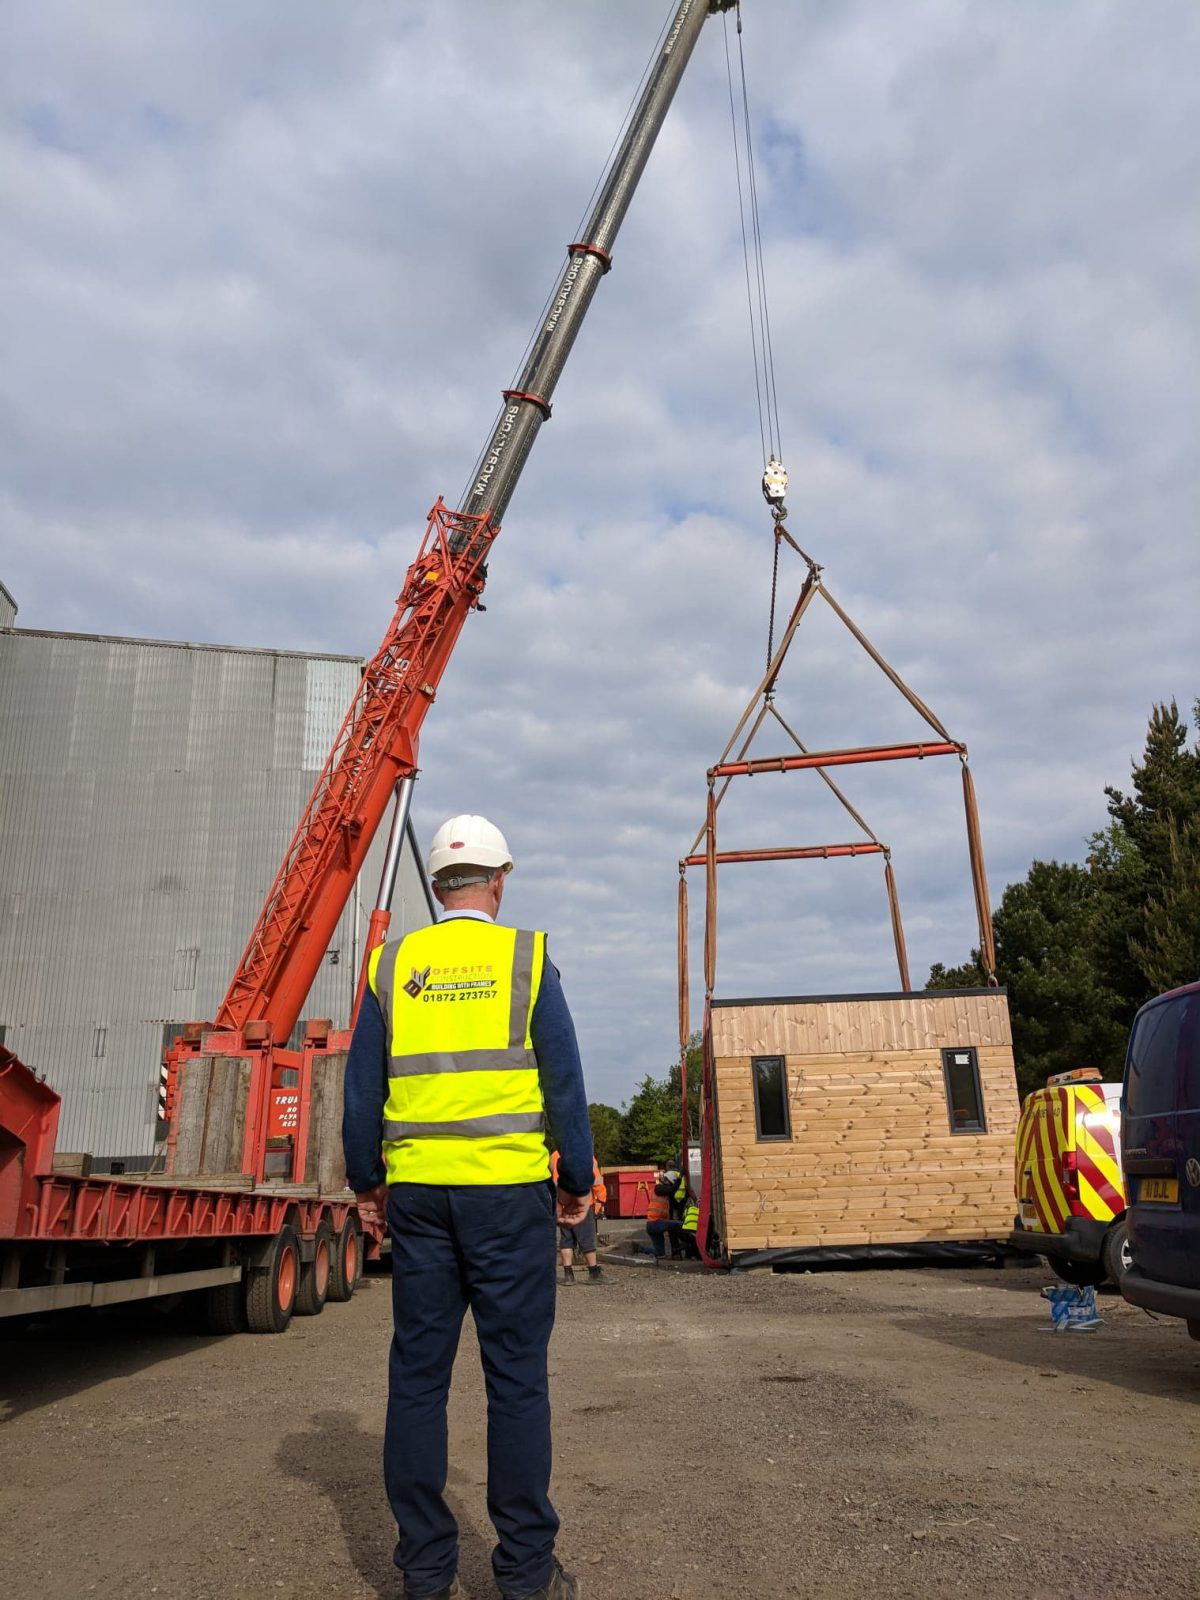 What are the benefits of modular build?